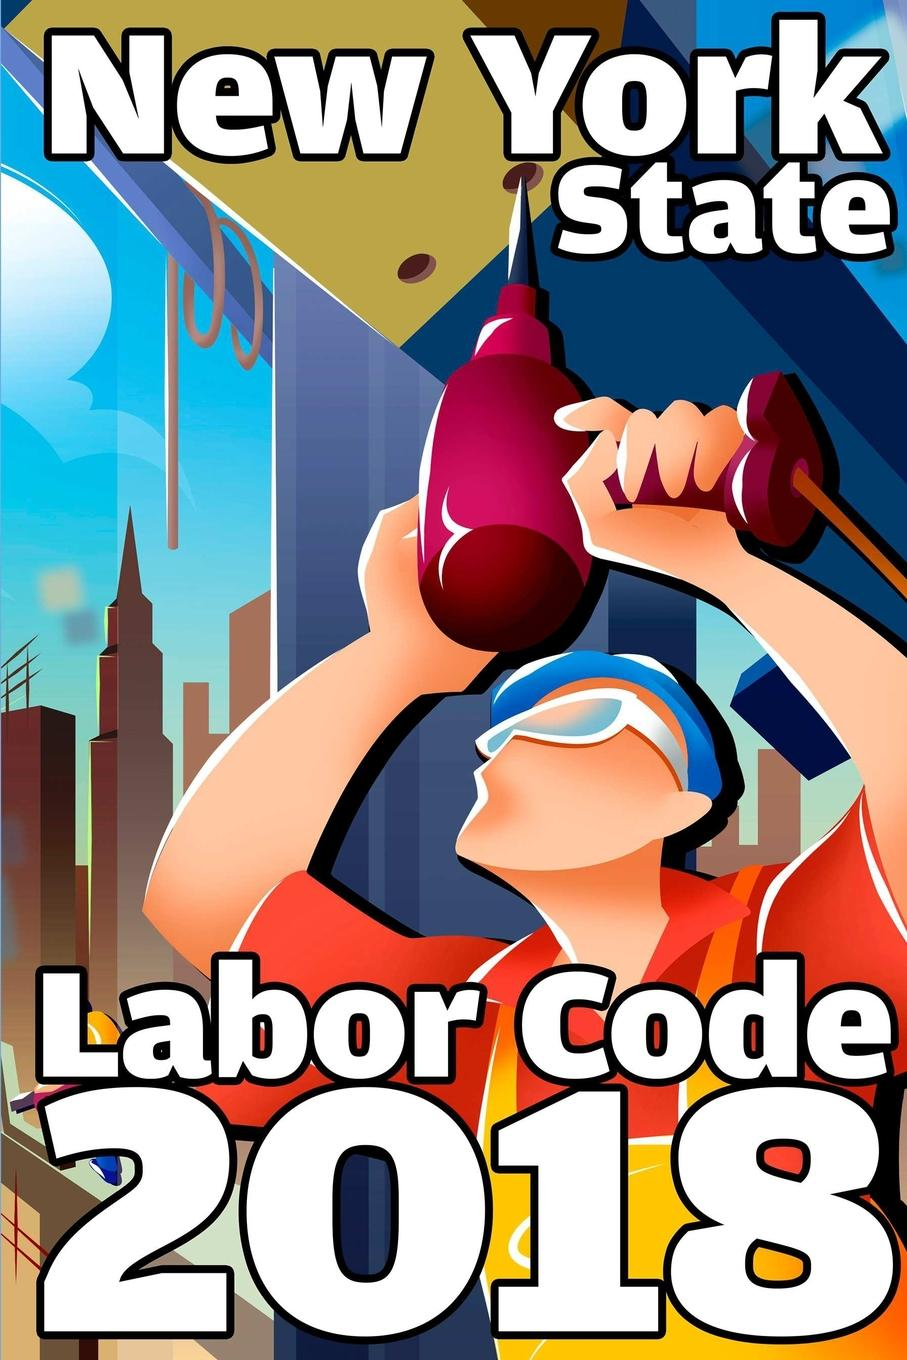 John Snape New York State Labor Code 2018